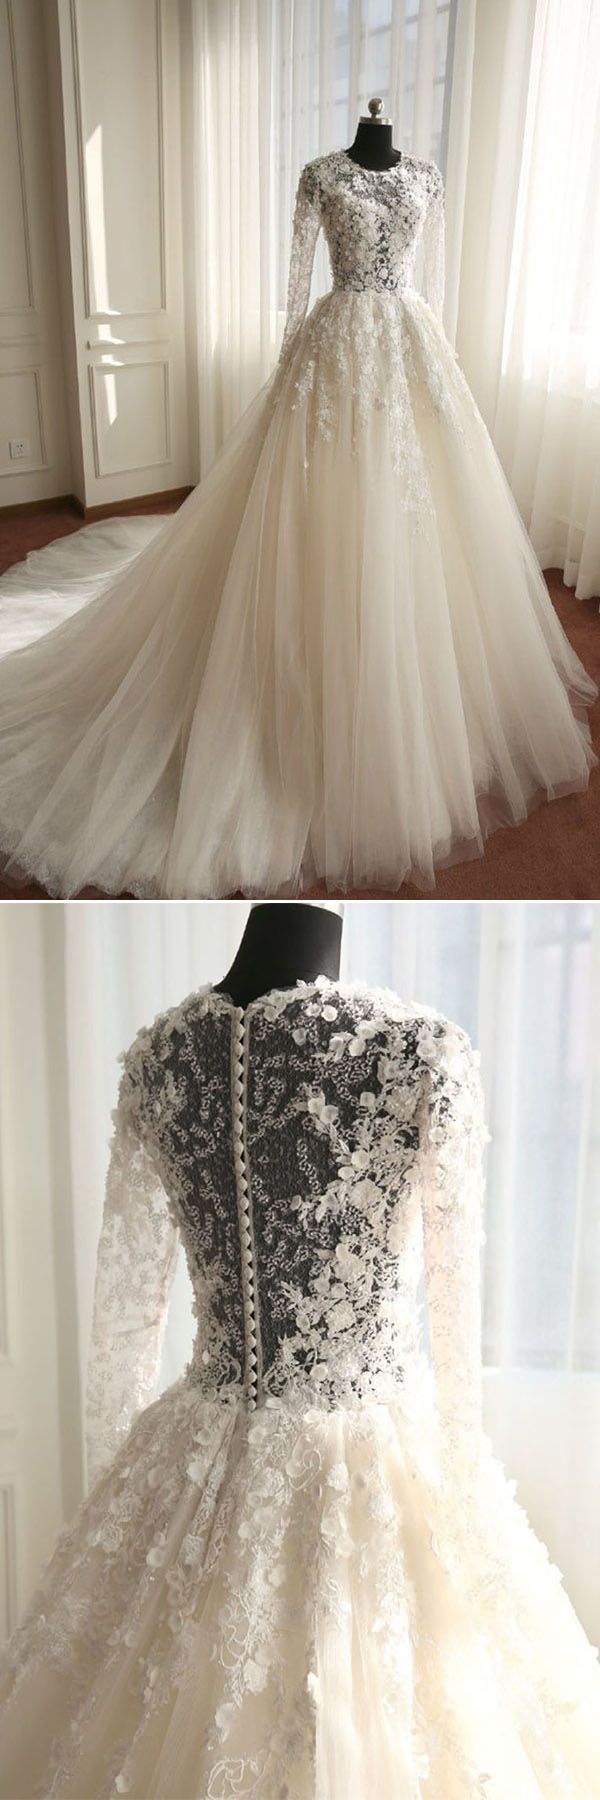 Lace wedding dress under 500 february 2019  best Bellaus Wedding Ideas images on Pinterest